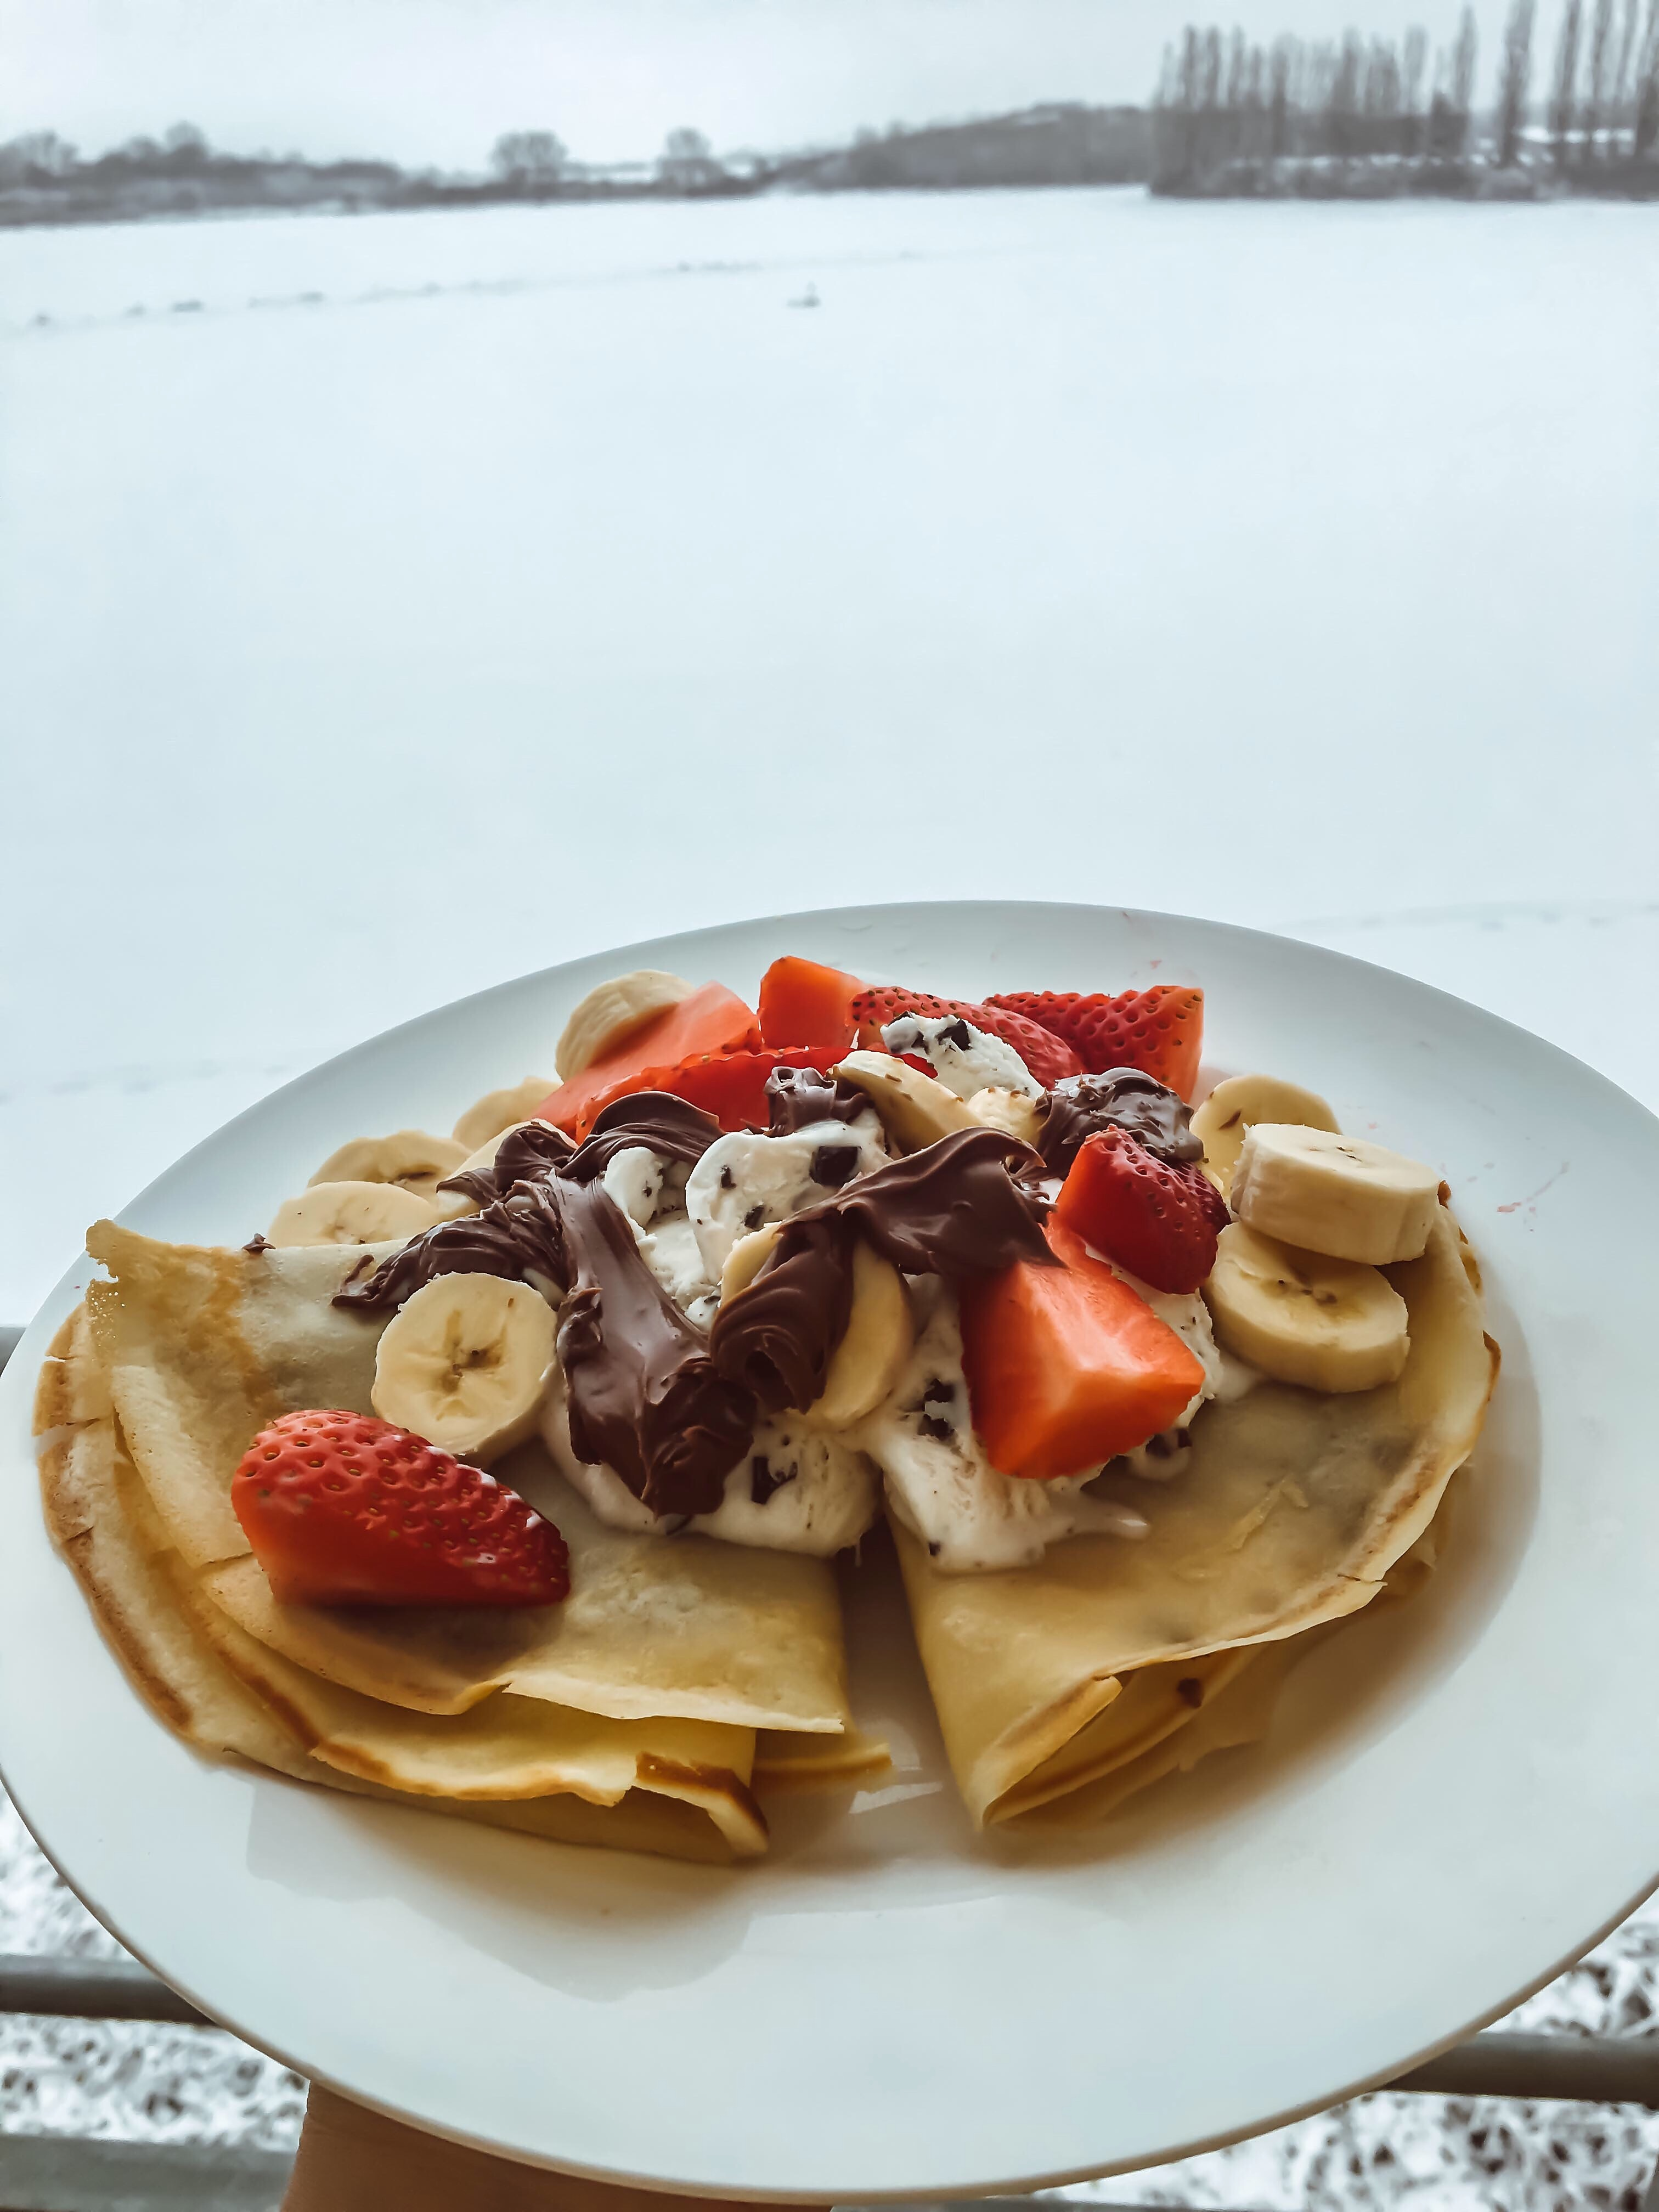 Morning pancakes beauty – Super easy recipe